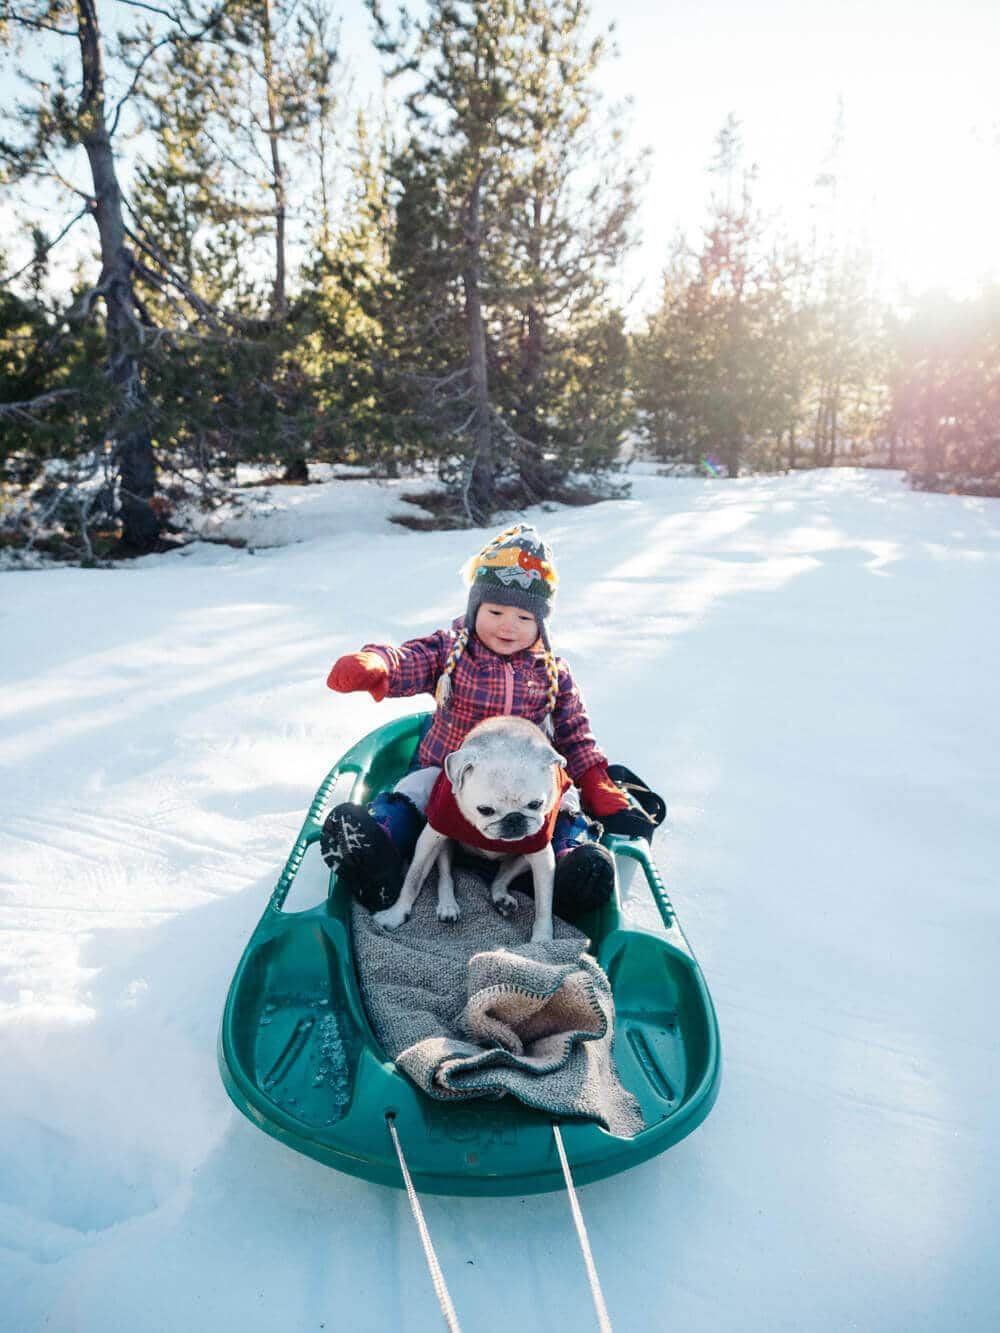 Taking the kids out for a spin on the sled